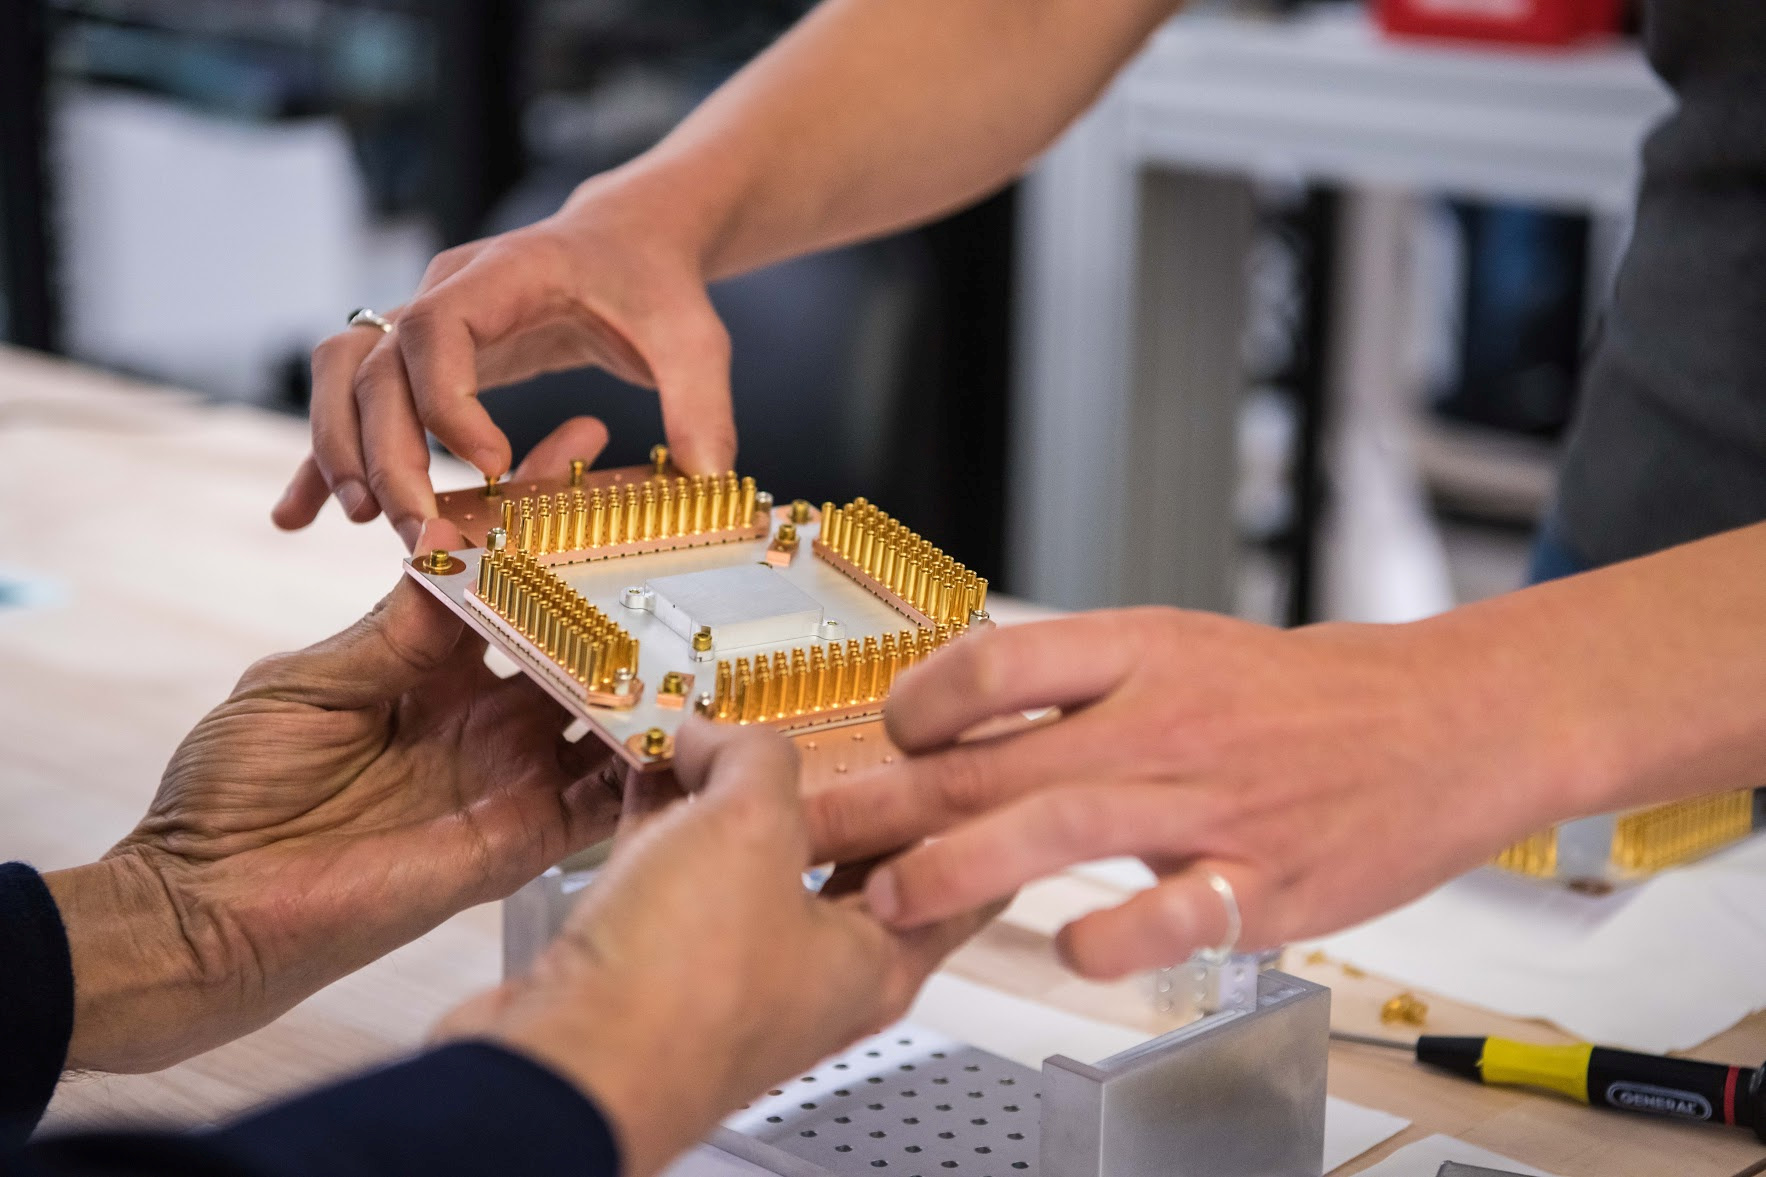 A handout picture from October 2019 shows a component of Google's Quantum Computer in the Santa Barbara lab, California, U.S. Google/Handout via REUTERS